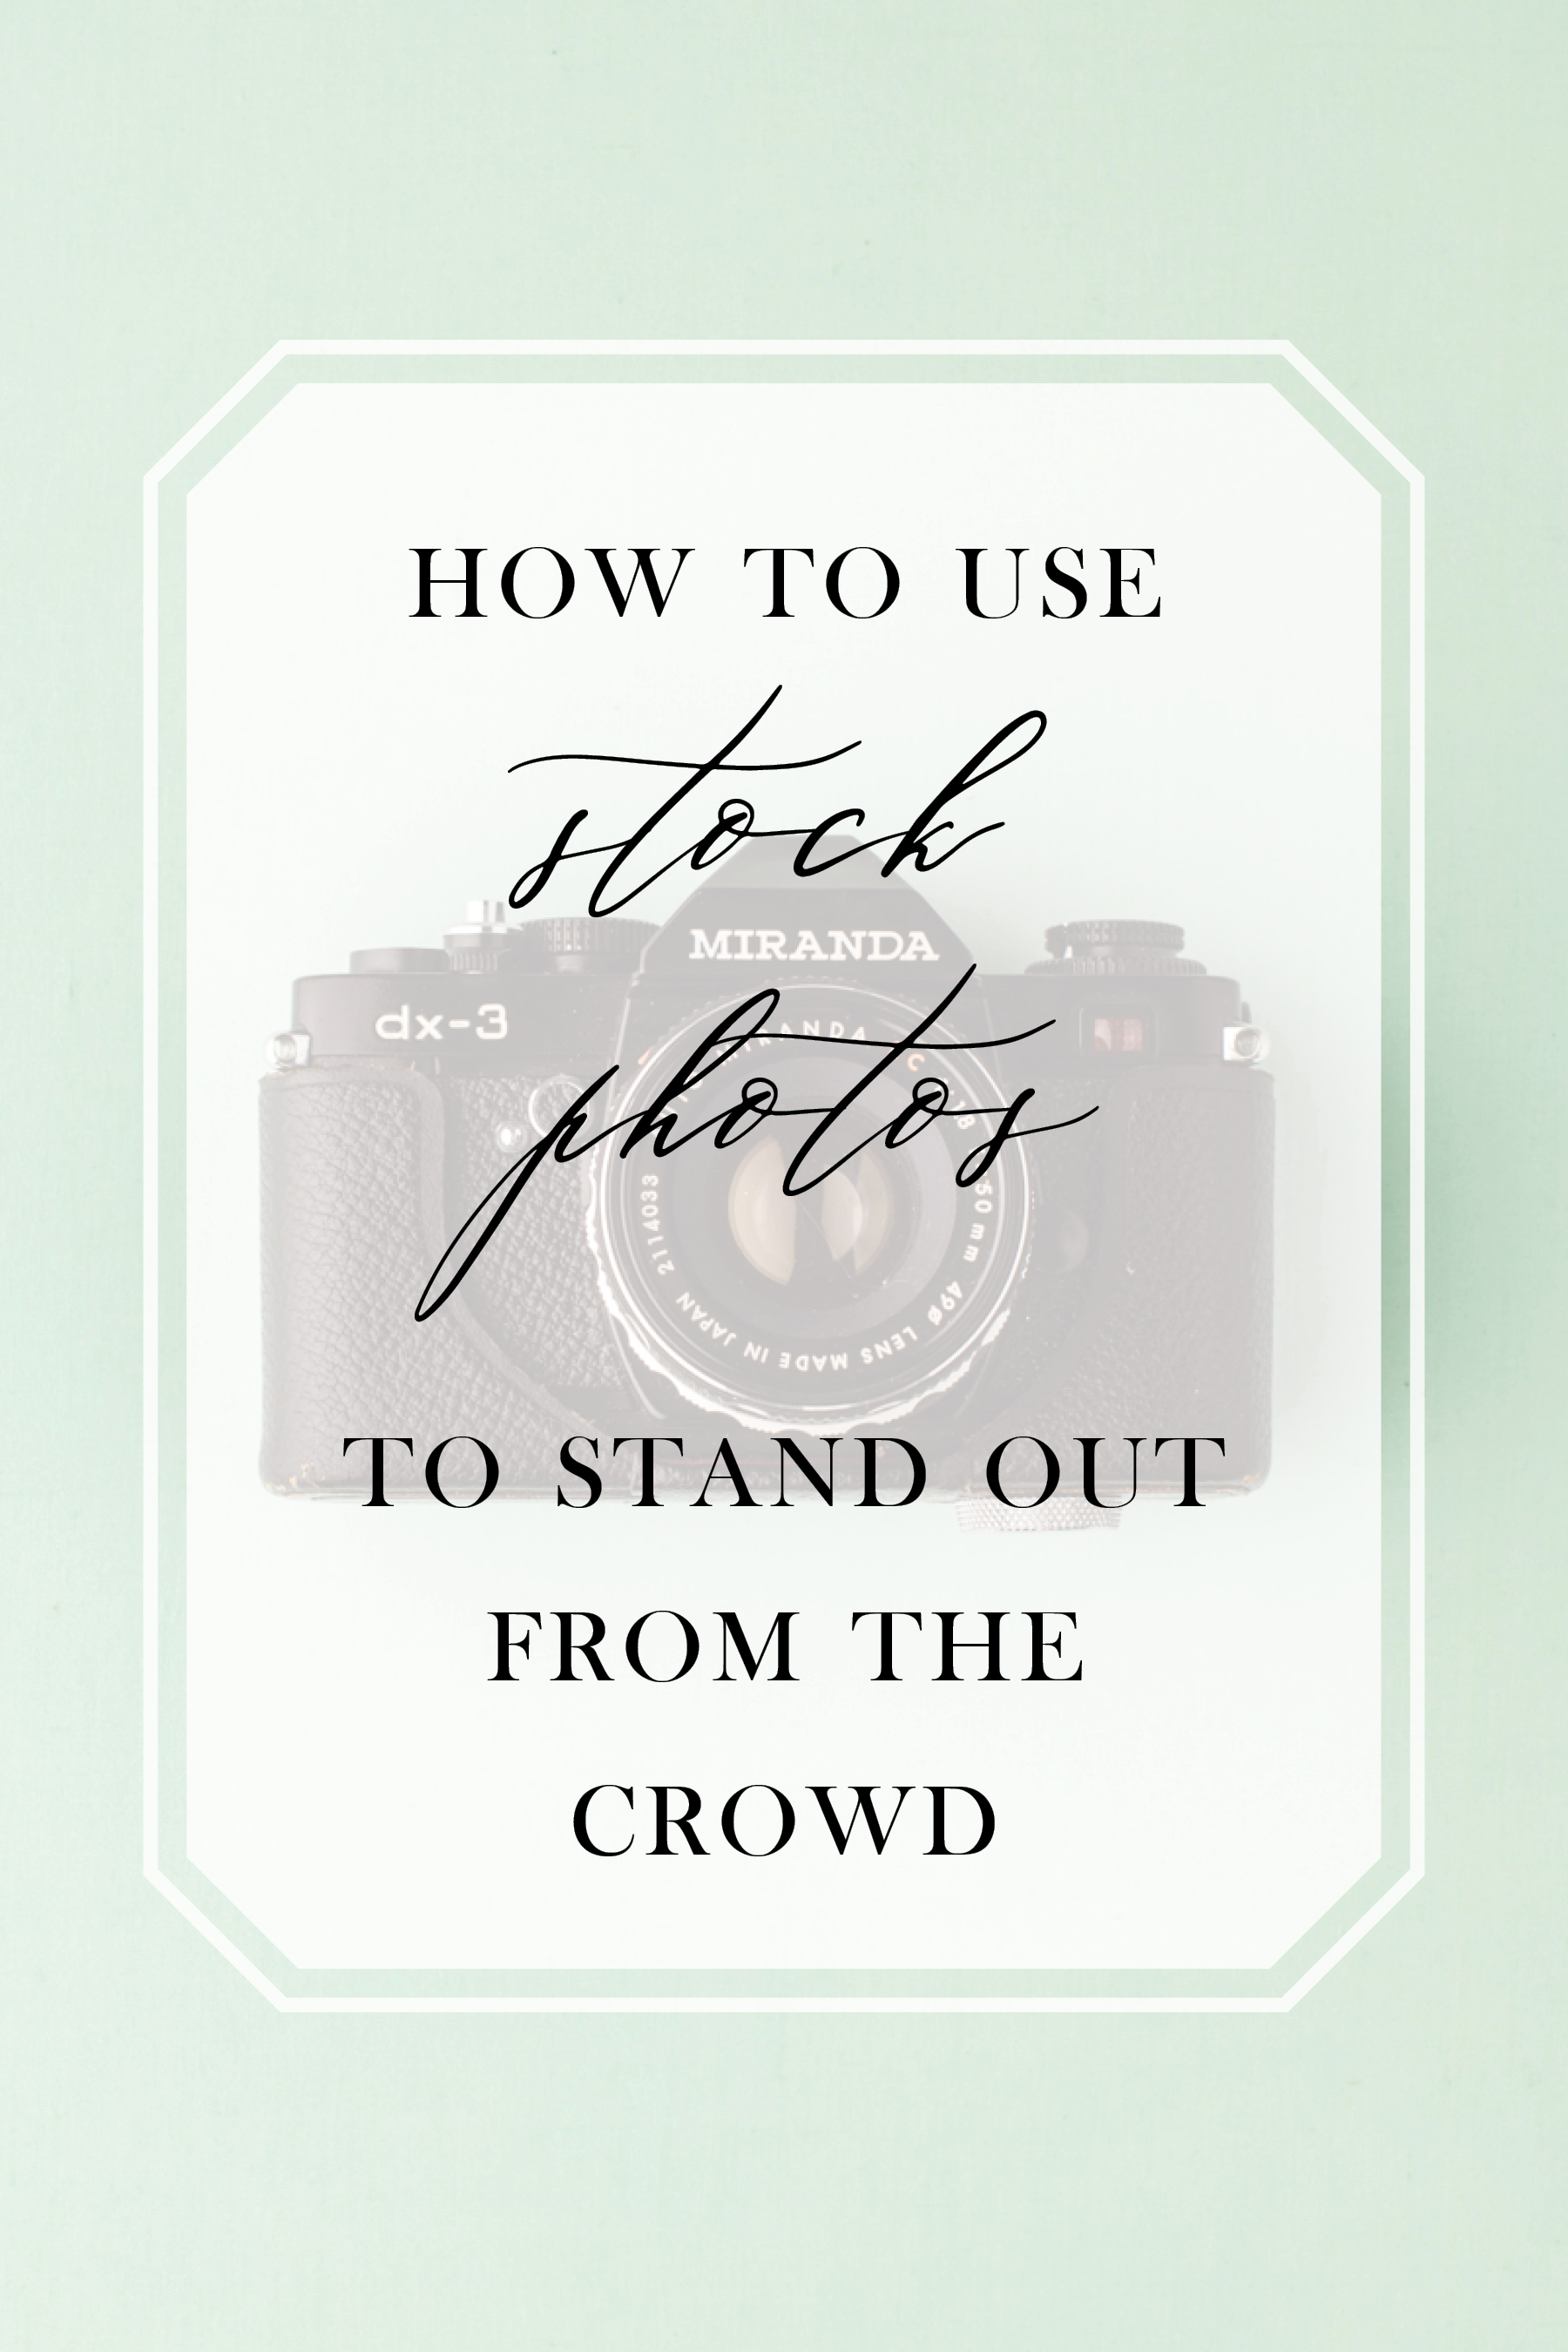 How to use stock photos to stand out from the crowd